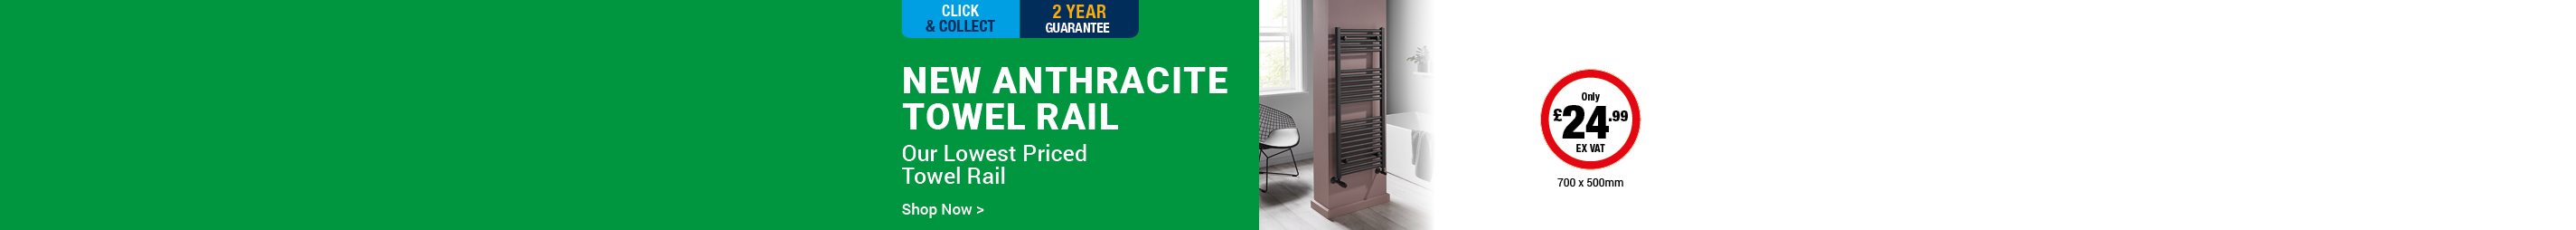 New Anthracite Towel Rail